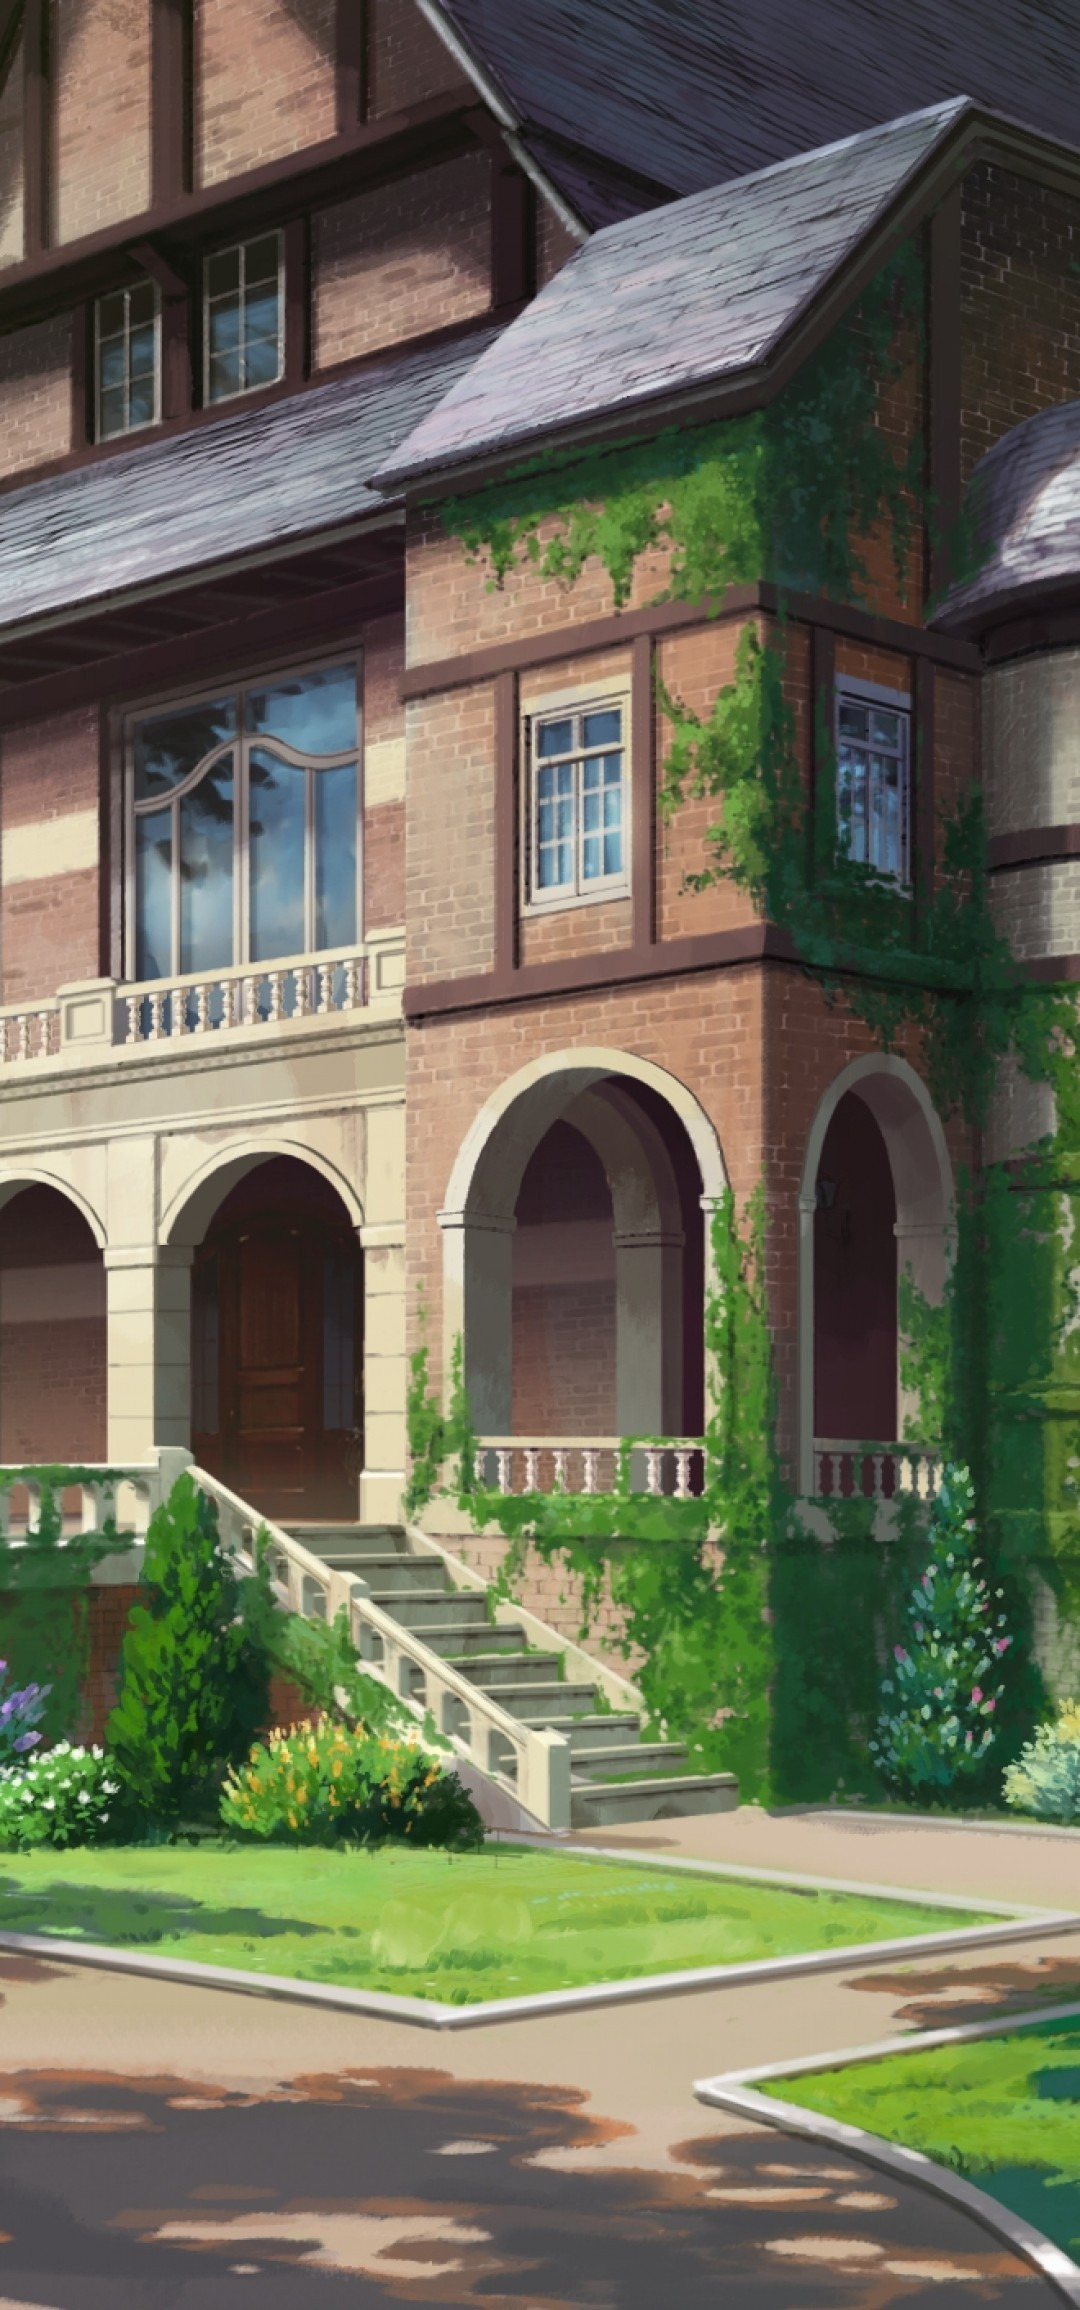 Moss Building & Design Beautiful Download 1080x2310 Anime Building Scenic forest Foliage